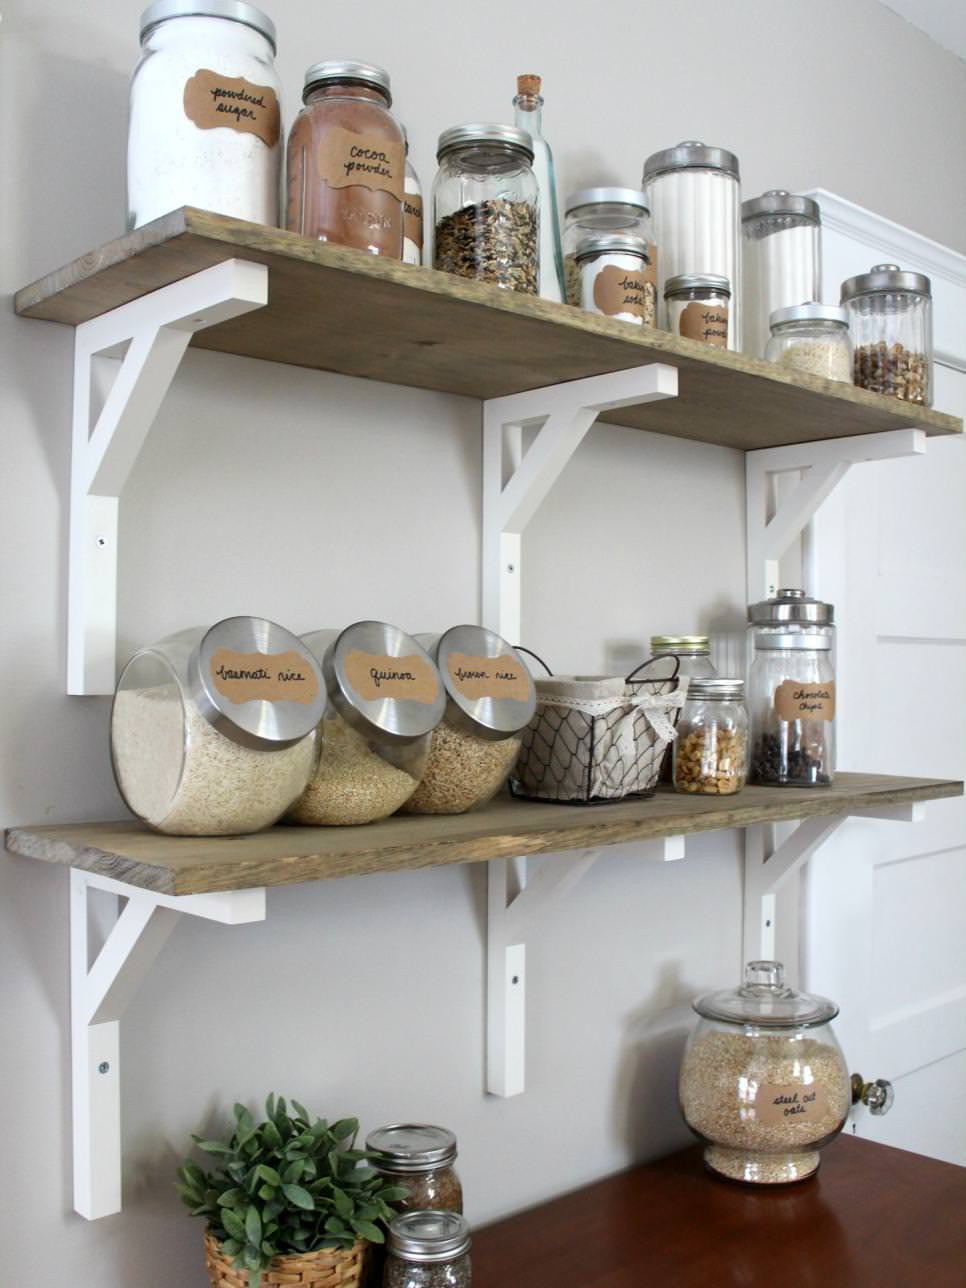 Best ideas about DIY Kitchen Shelving Ideas . Save or Pin 23 DIY Shelves Furniture Designs Ideas Plans Now.